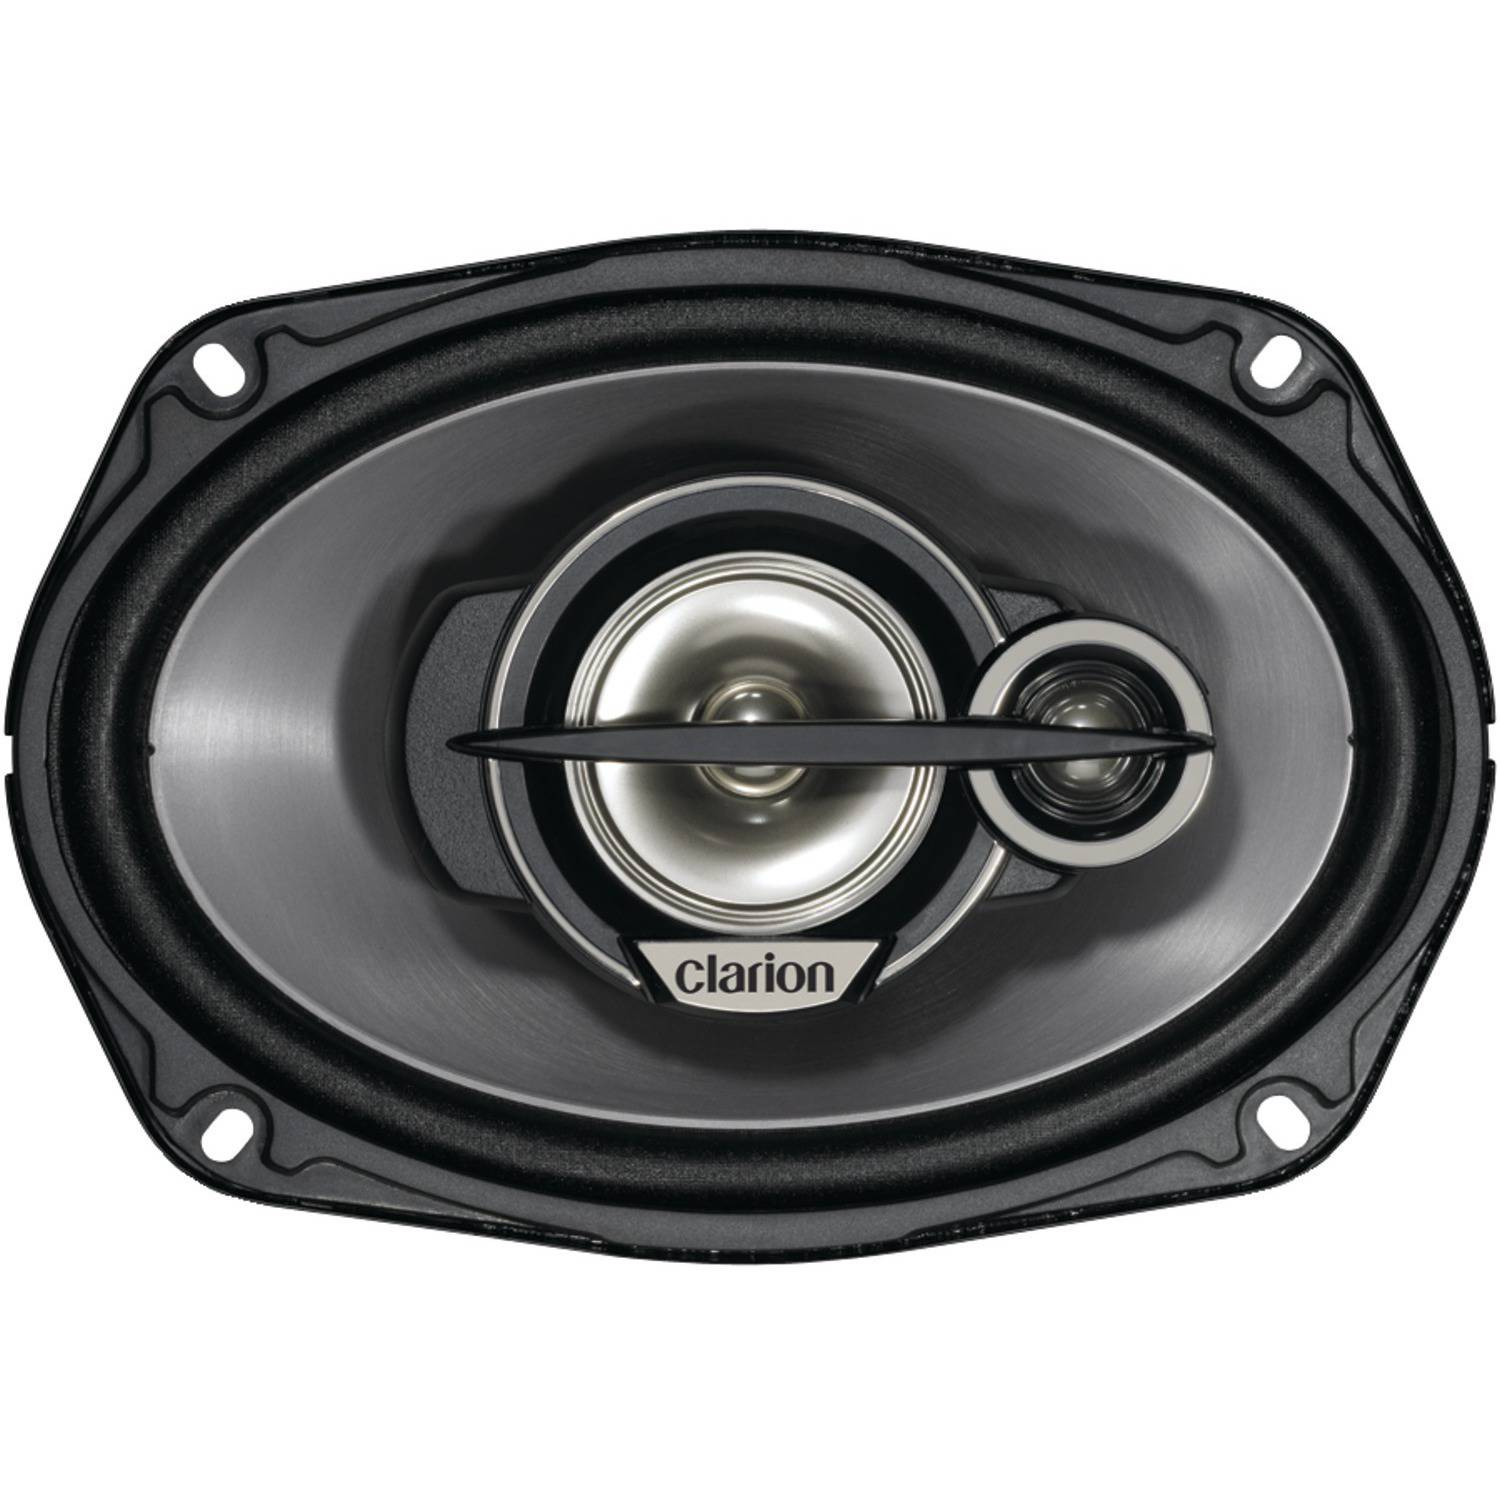 "Clarion Srg6933r G Series 6"" x 9"" Multi-axial Speaker Sys..."